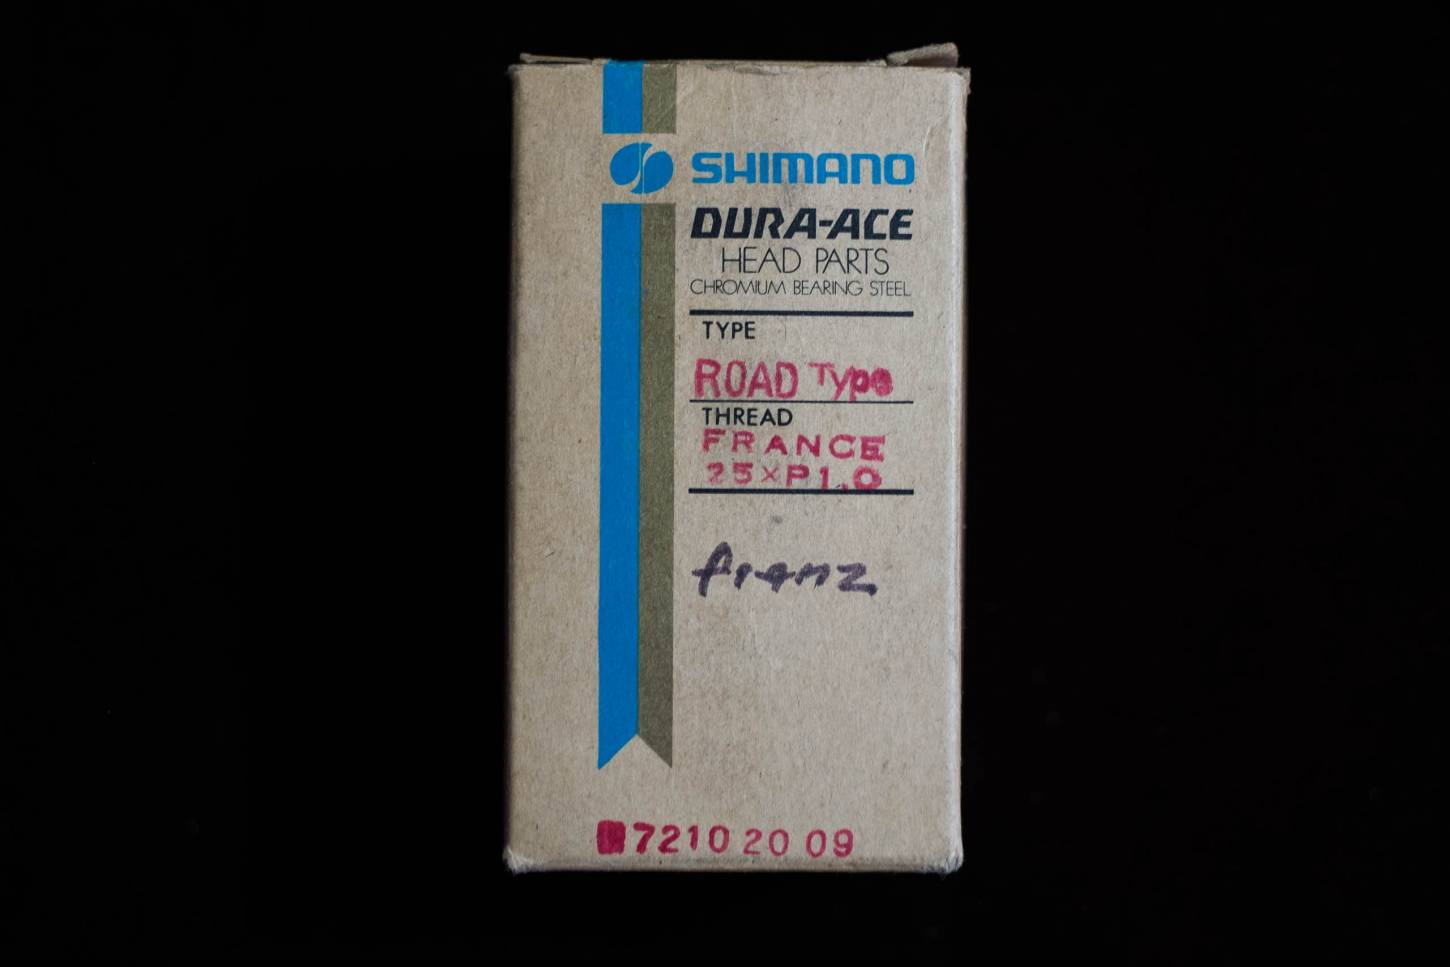 NOS Shimano Dura Ace Headset UA-100 Headset First Gen. french 25x1mm Vintage